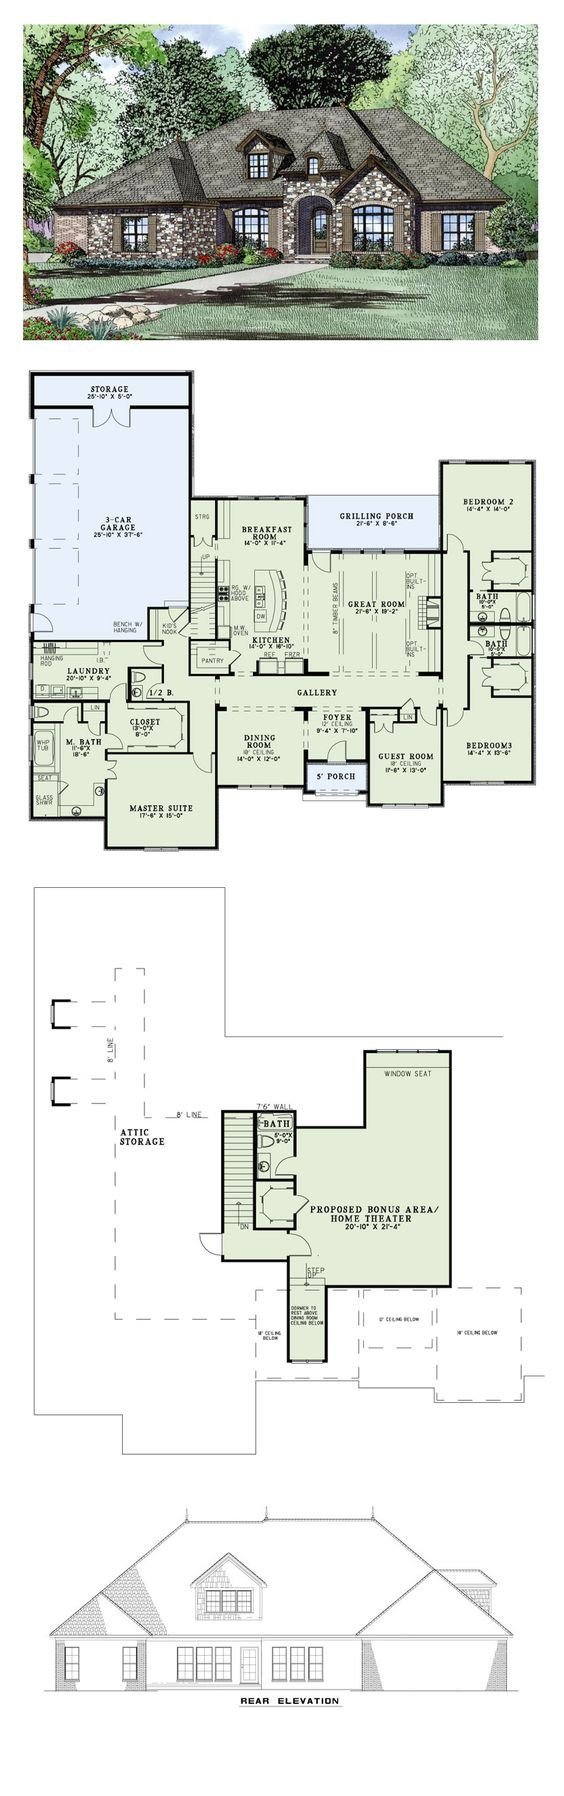 Furthermore medieval manor house on floor plans with central - My 1 Pick European House Plan 82163 Total Living Area 3415 Sq